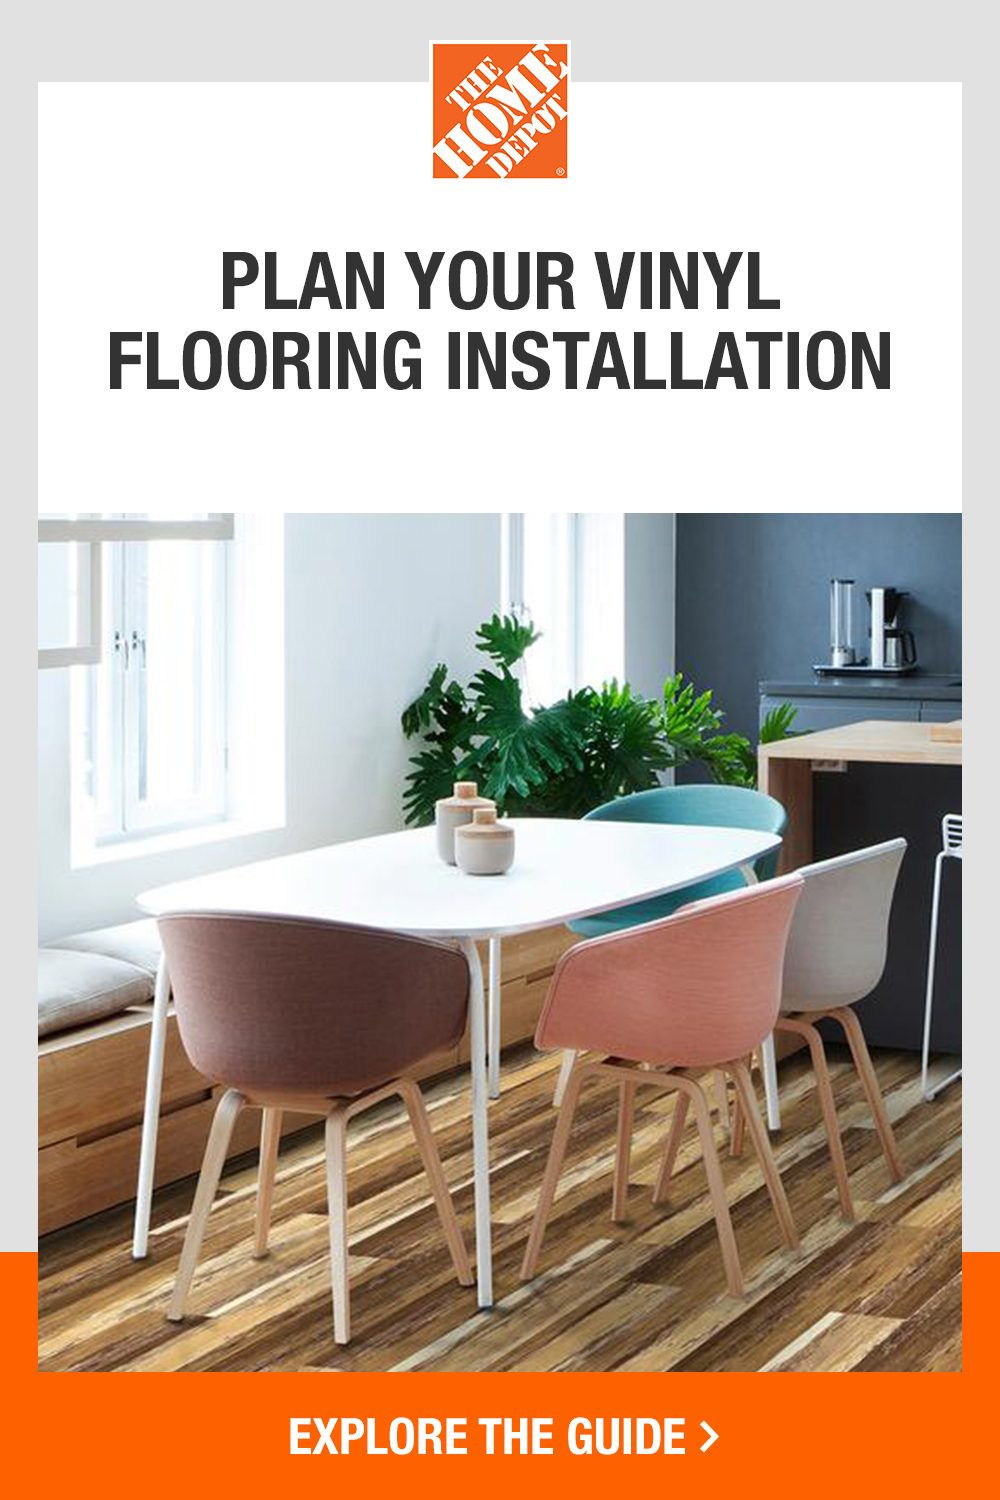 Planning your vinyl floors project just got easier with The Home Depot. Vinyl flooring is the perfect option to refresh your home without the cost of installation. This product is versatile, durable, and easy to install—making it a great option for home-improvers. Explore The Home Depot guide for the how-to basics and tools you will need to install your beautiful new flooring.